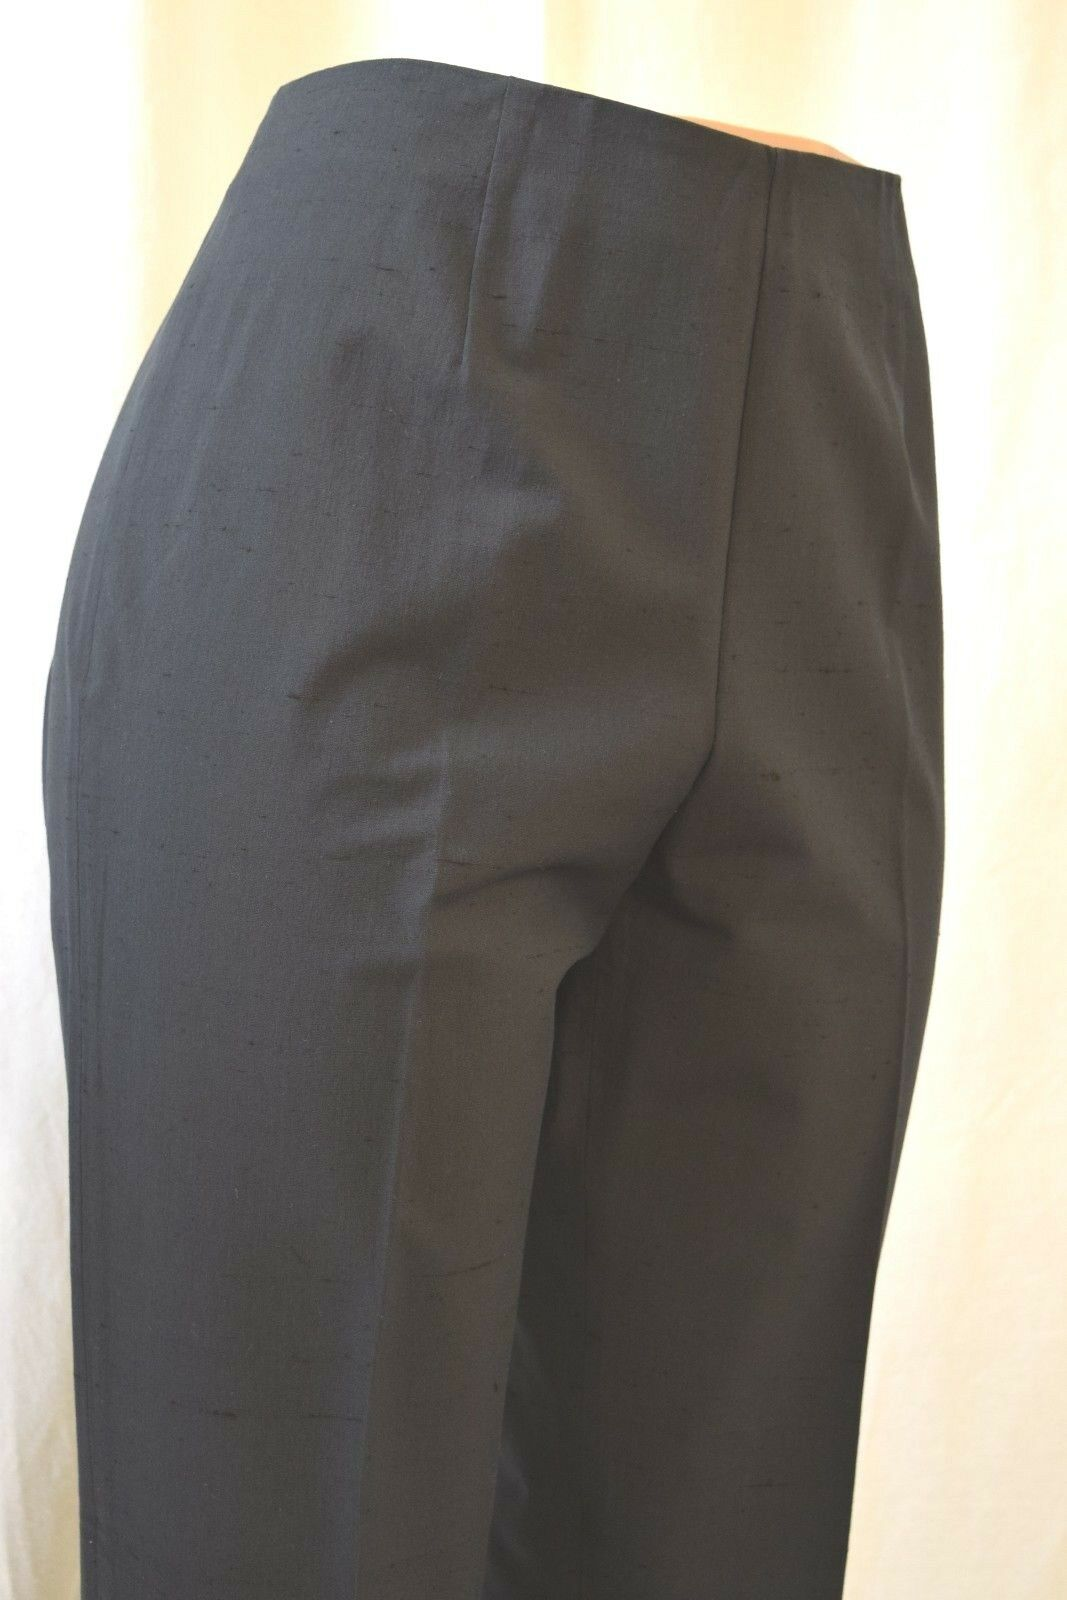 LEGIADRO TENCO COTTON BLENDON SIDE ZIPER DRIVER PANTS storLEK 12 \\35;LE017